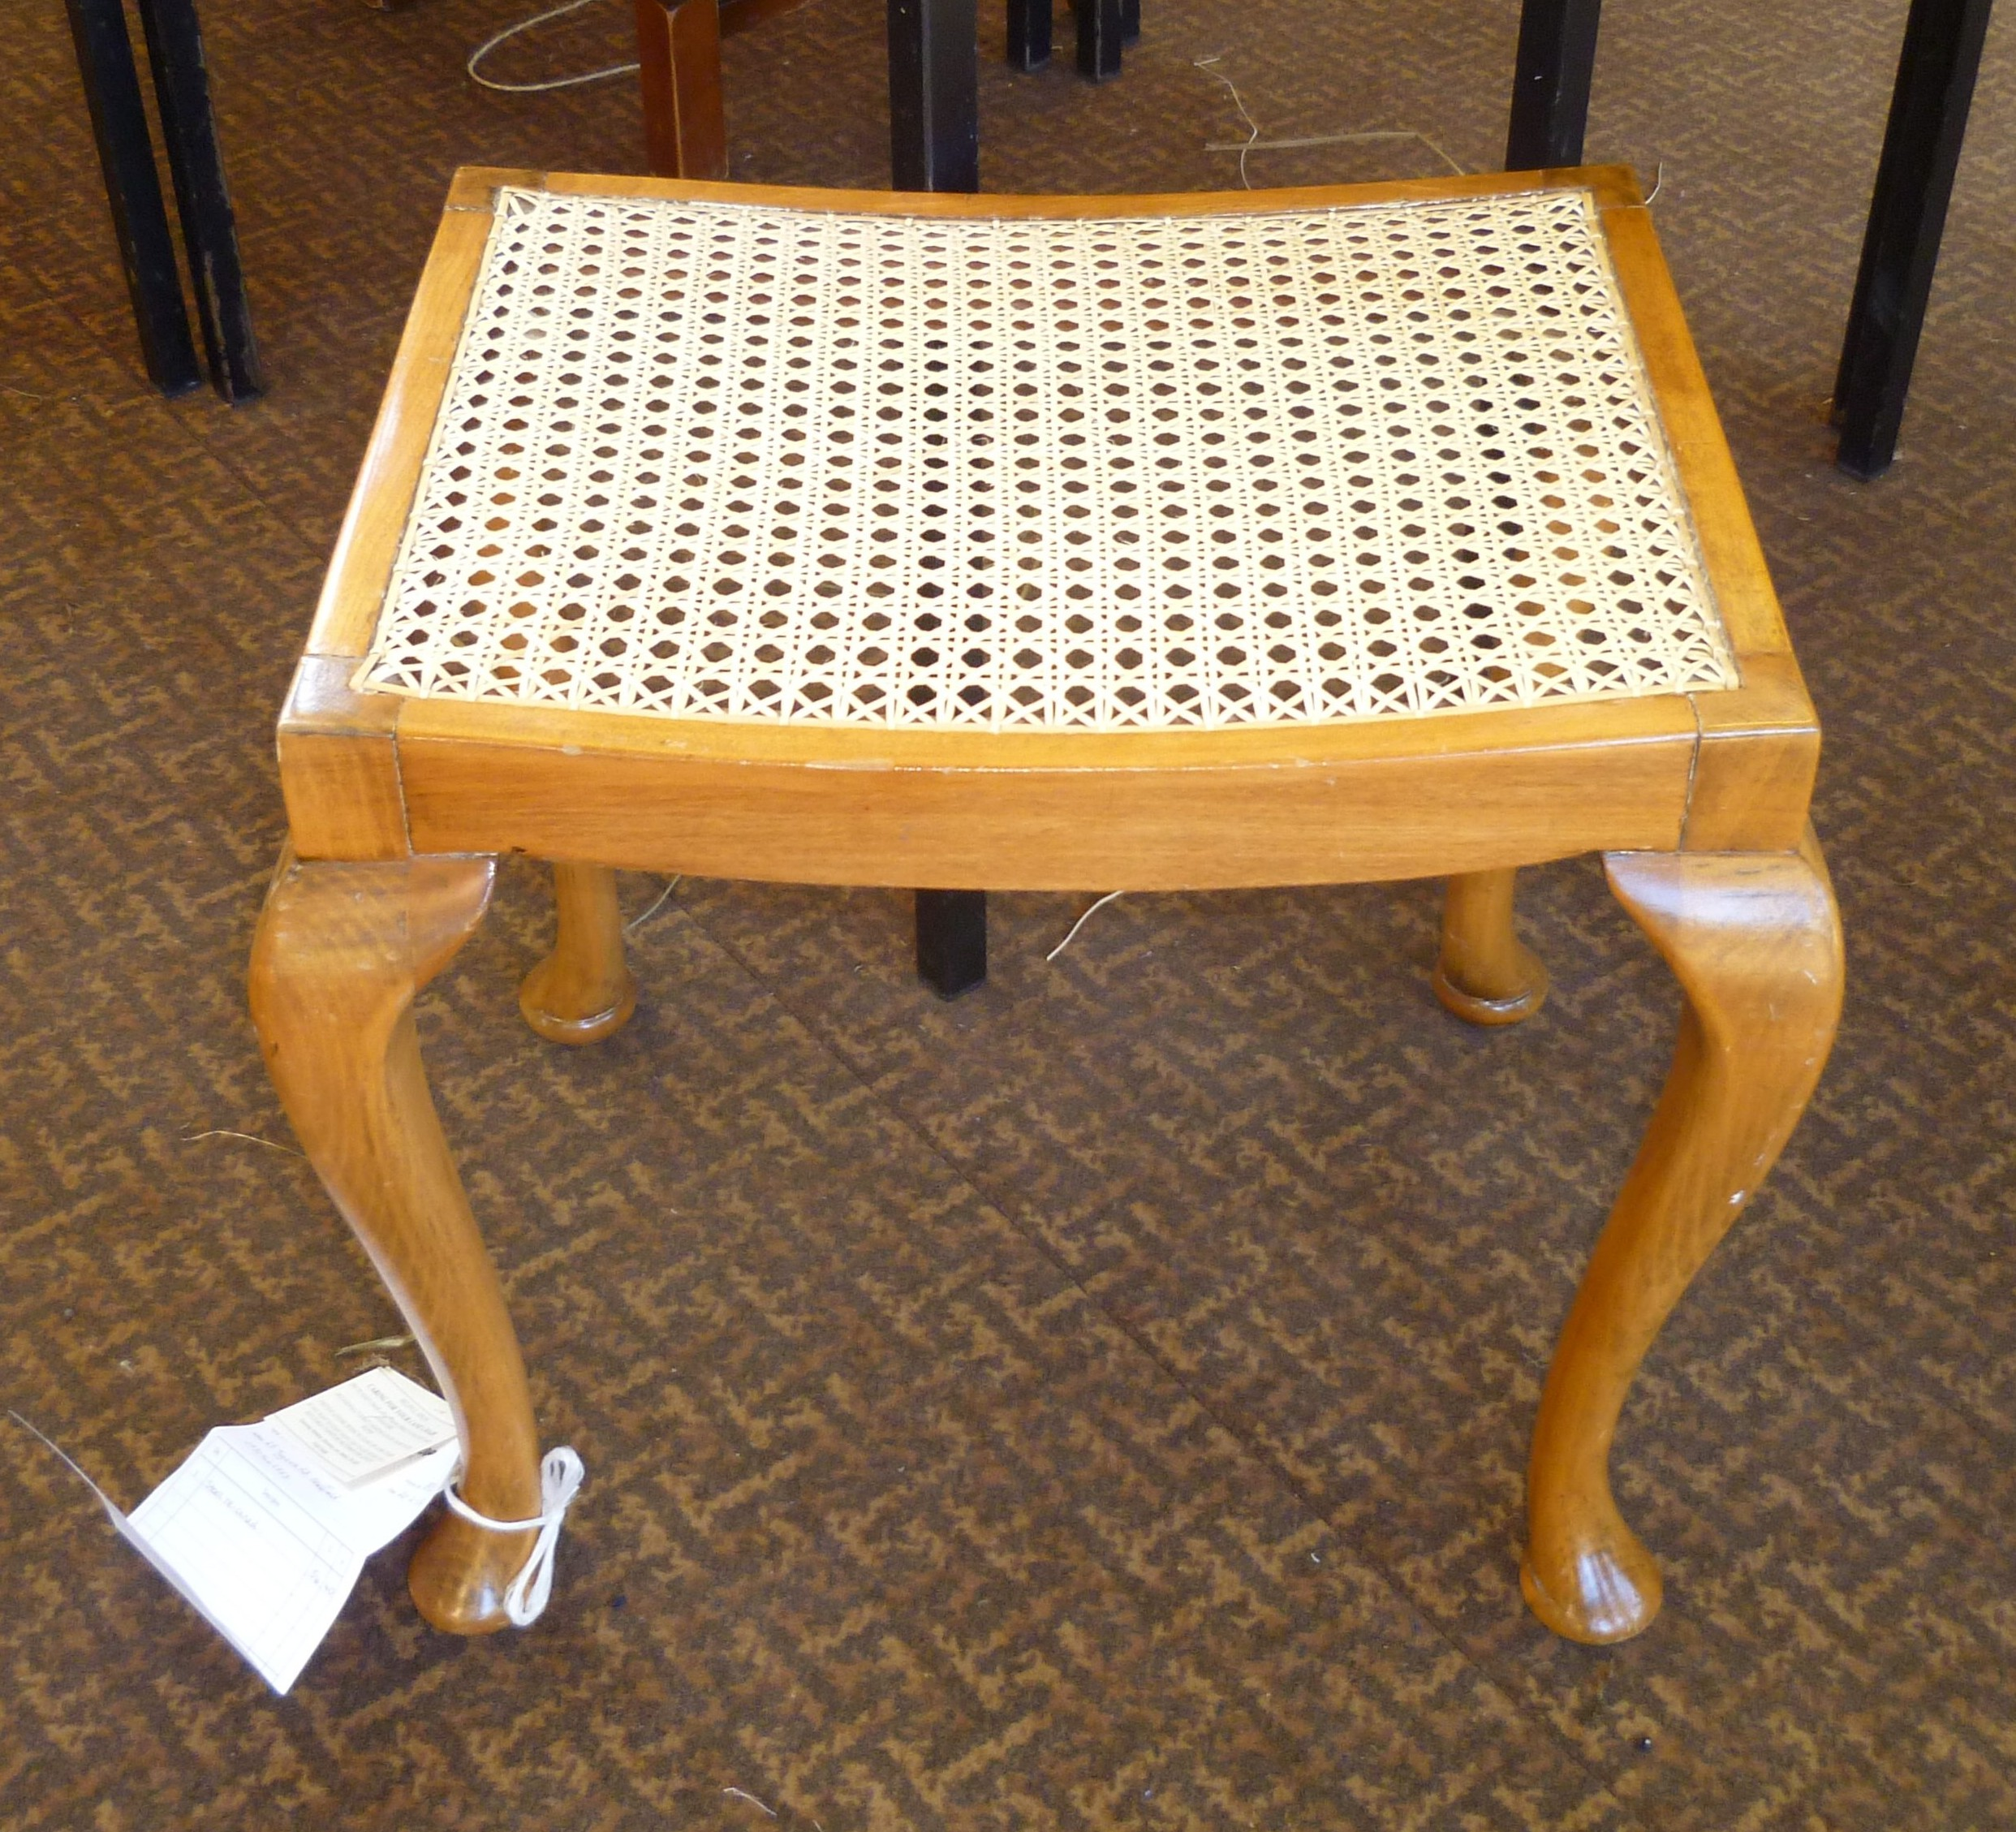 Chair caning supplies - We